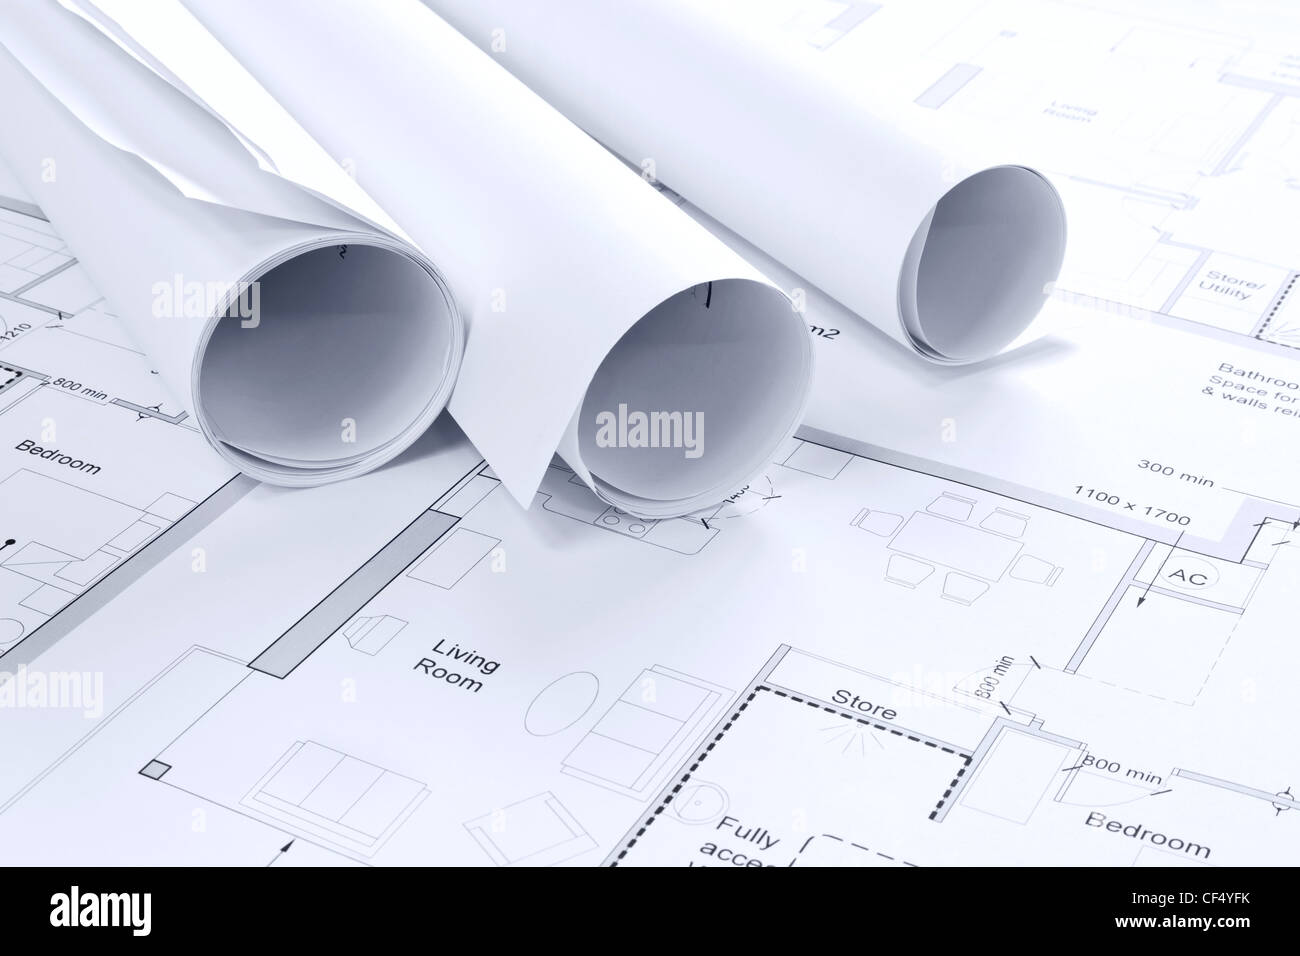 Still life photo of some architectural drawings - Stock Image